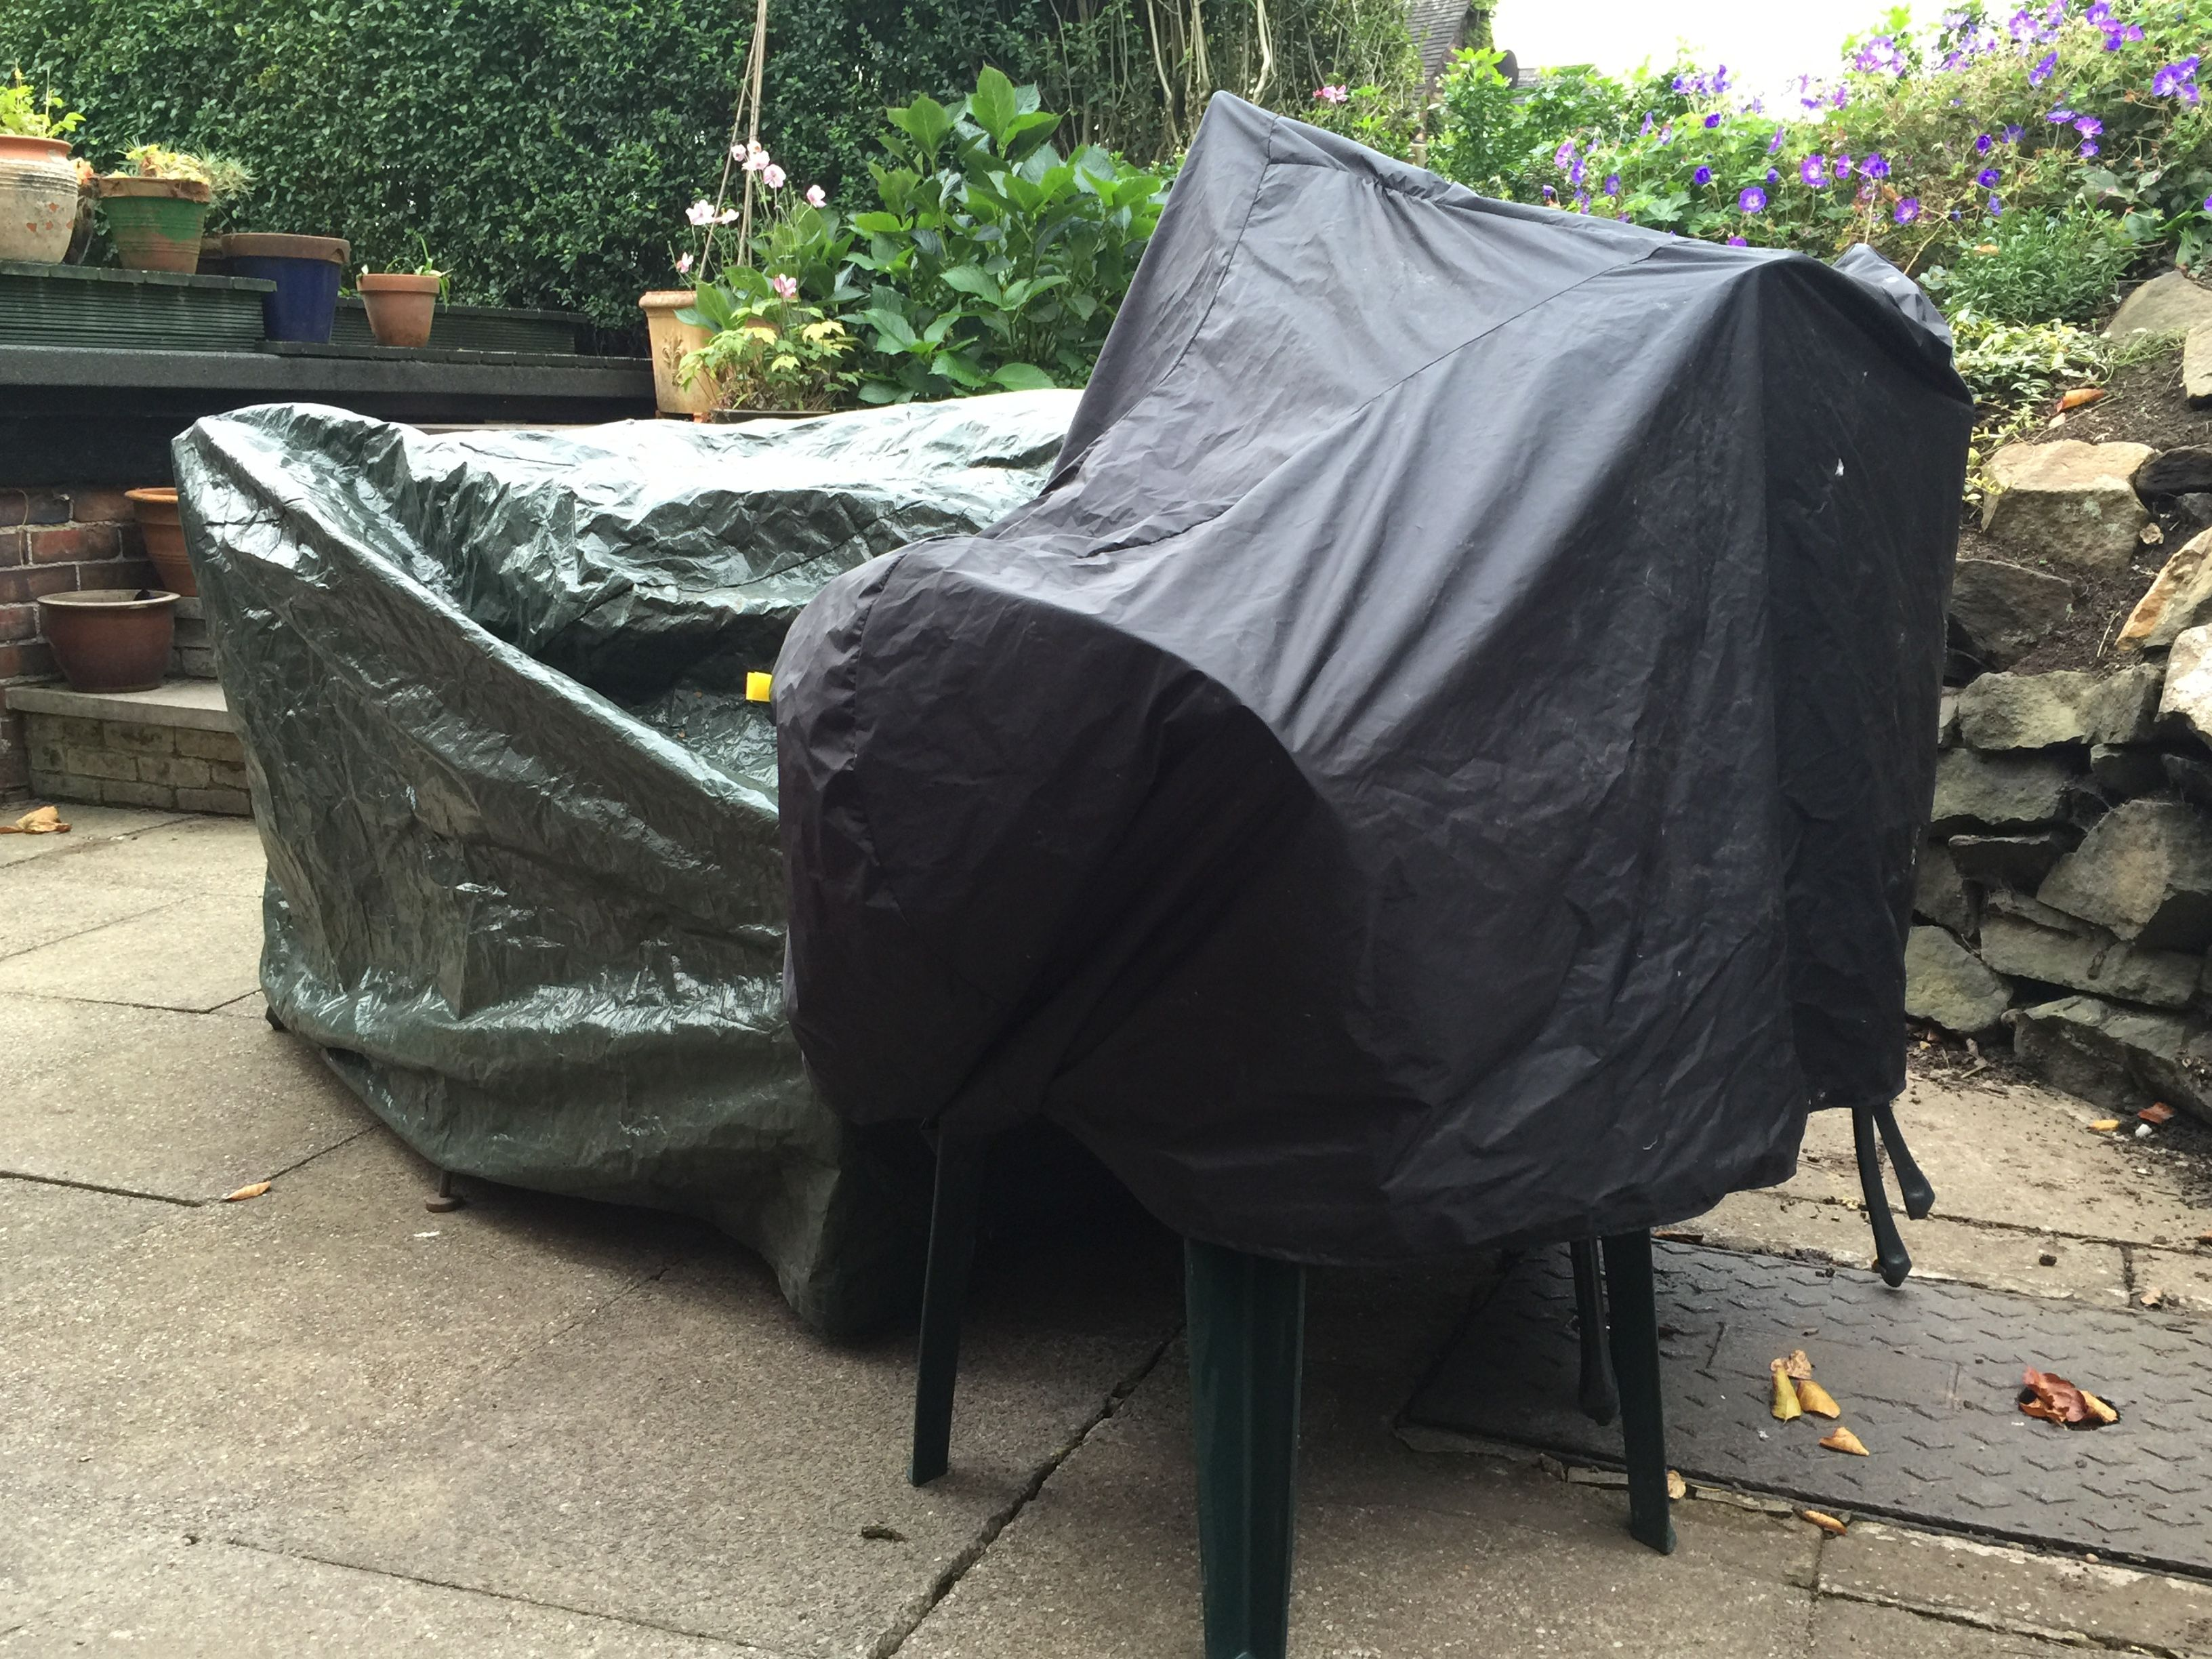 10/10/15. Packed up garden stuff ready for winter- it's that time already. Also looked out photos for special birthday. G round this evening. Started watching Better Call Saul: seems good.